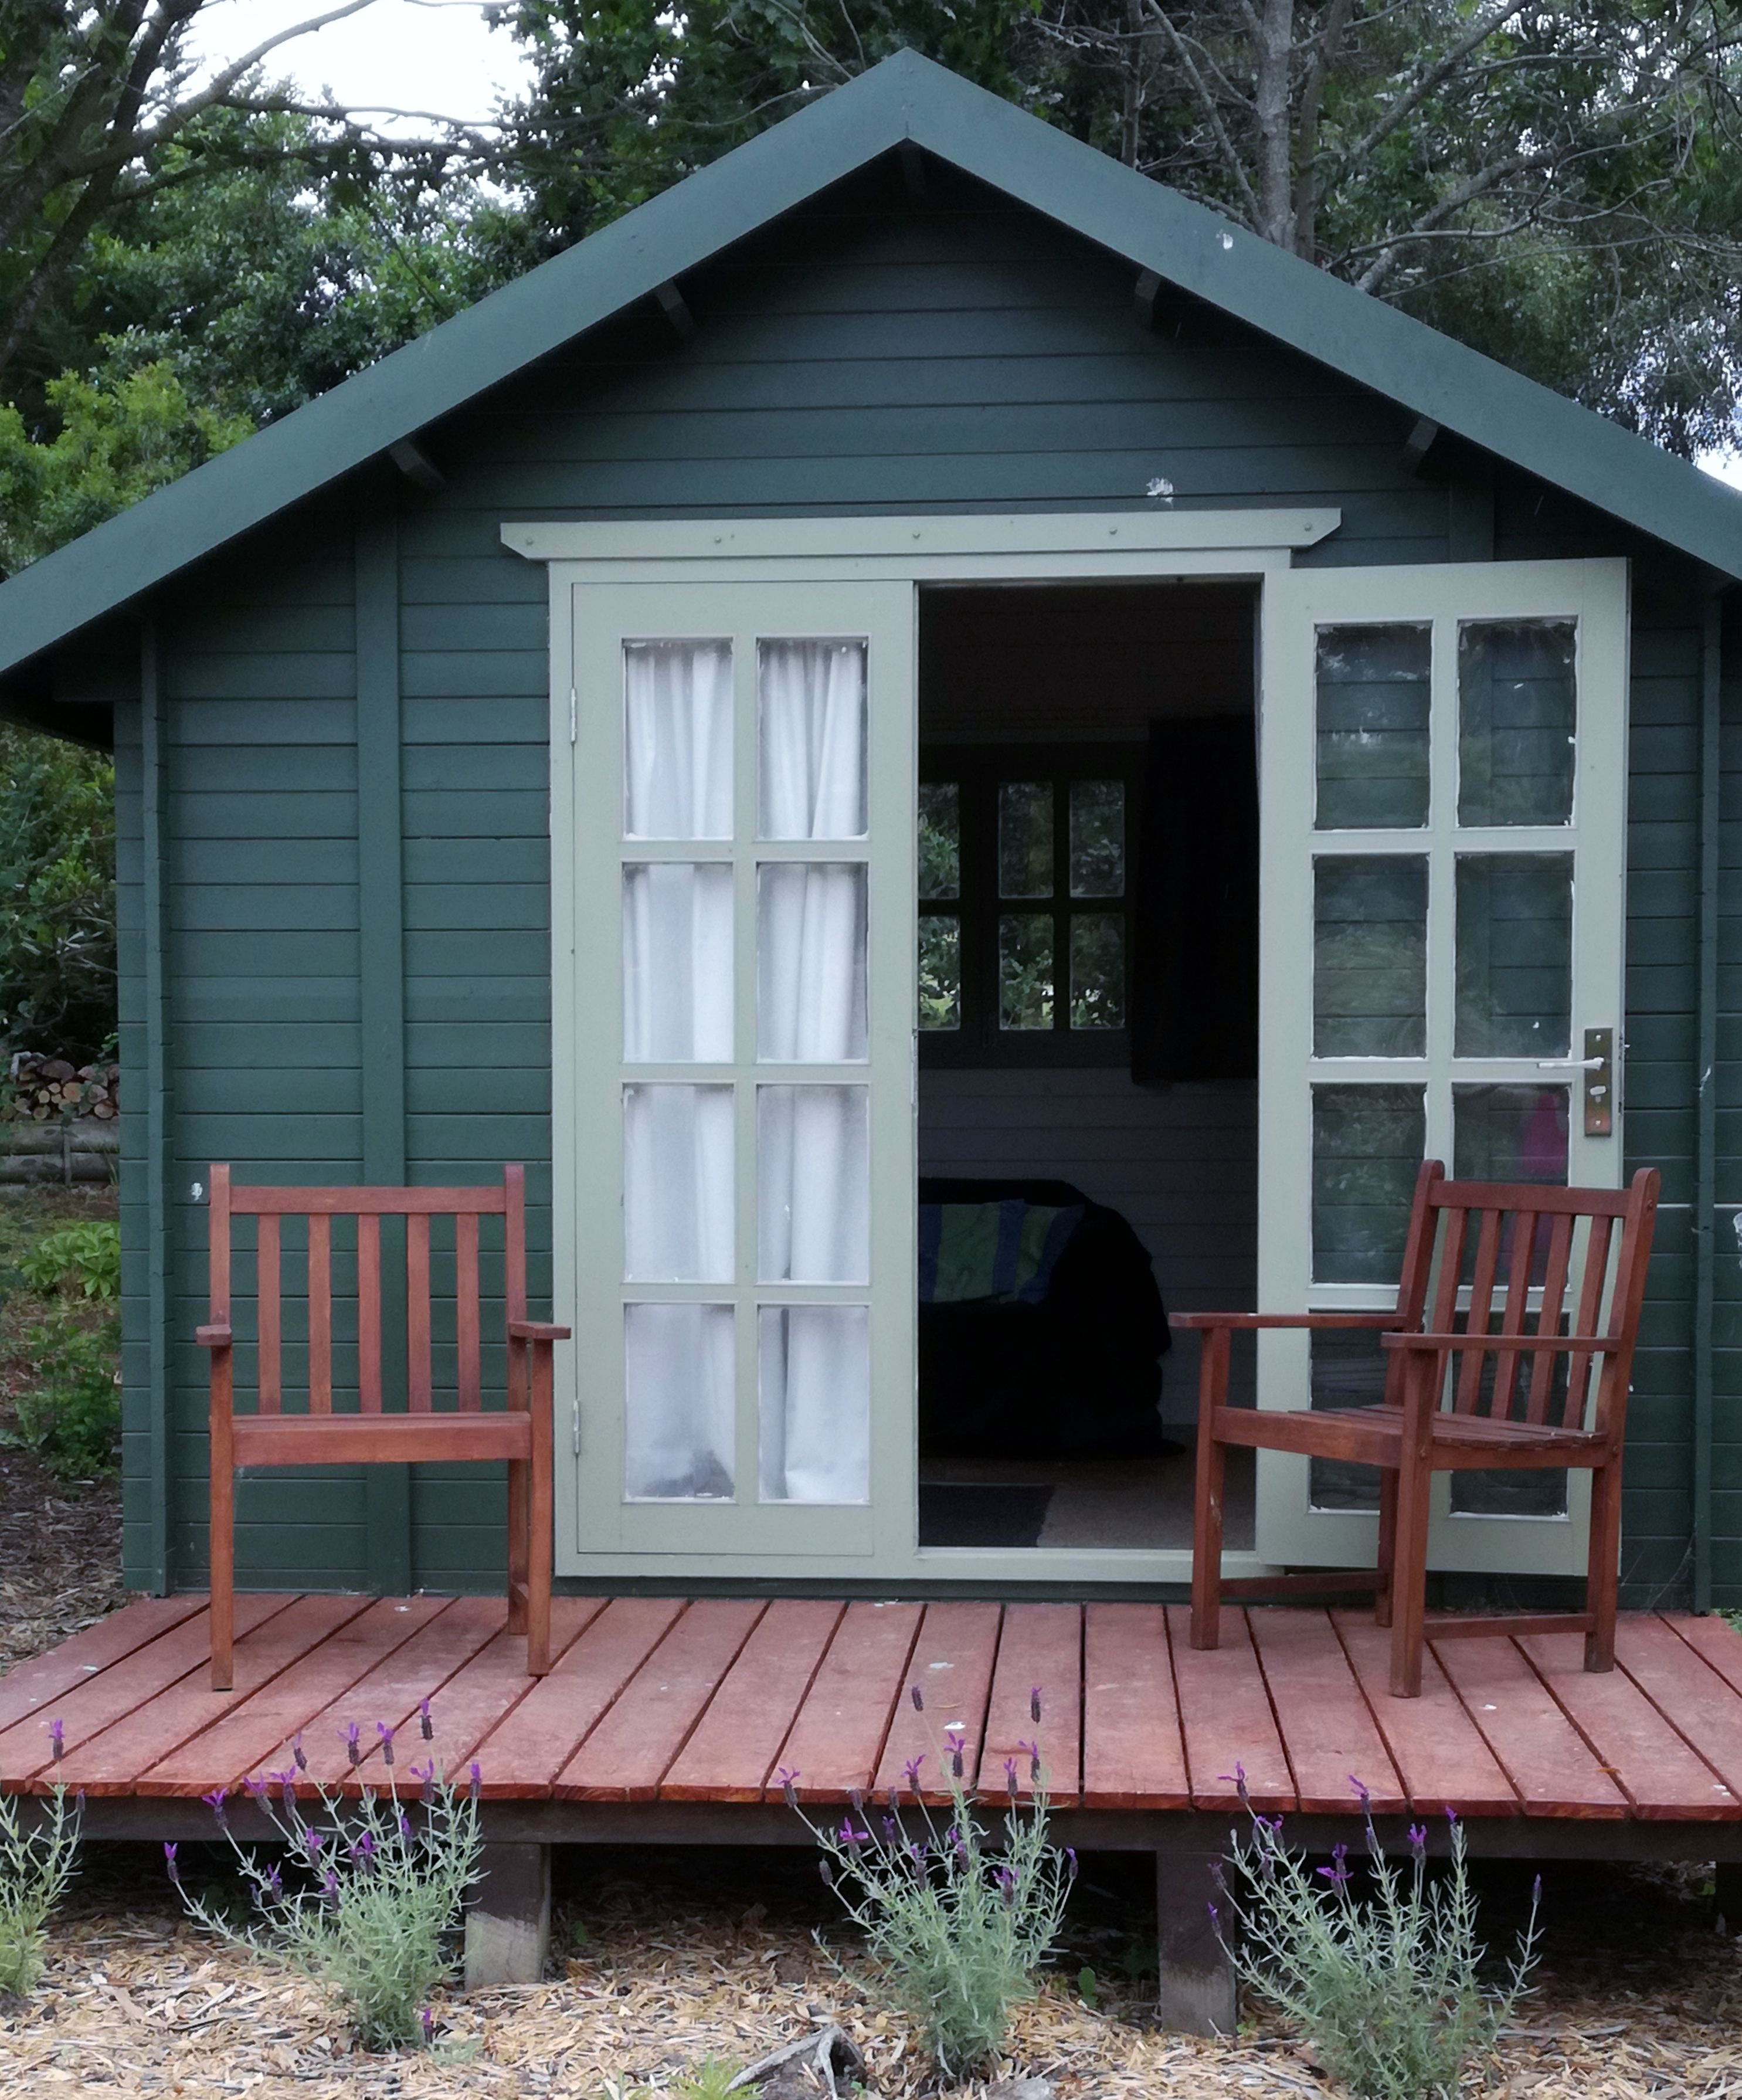 Pin by homelandz on She Sheds (With images) Building a